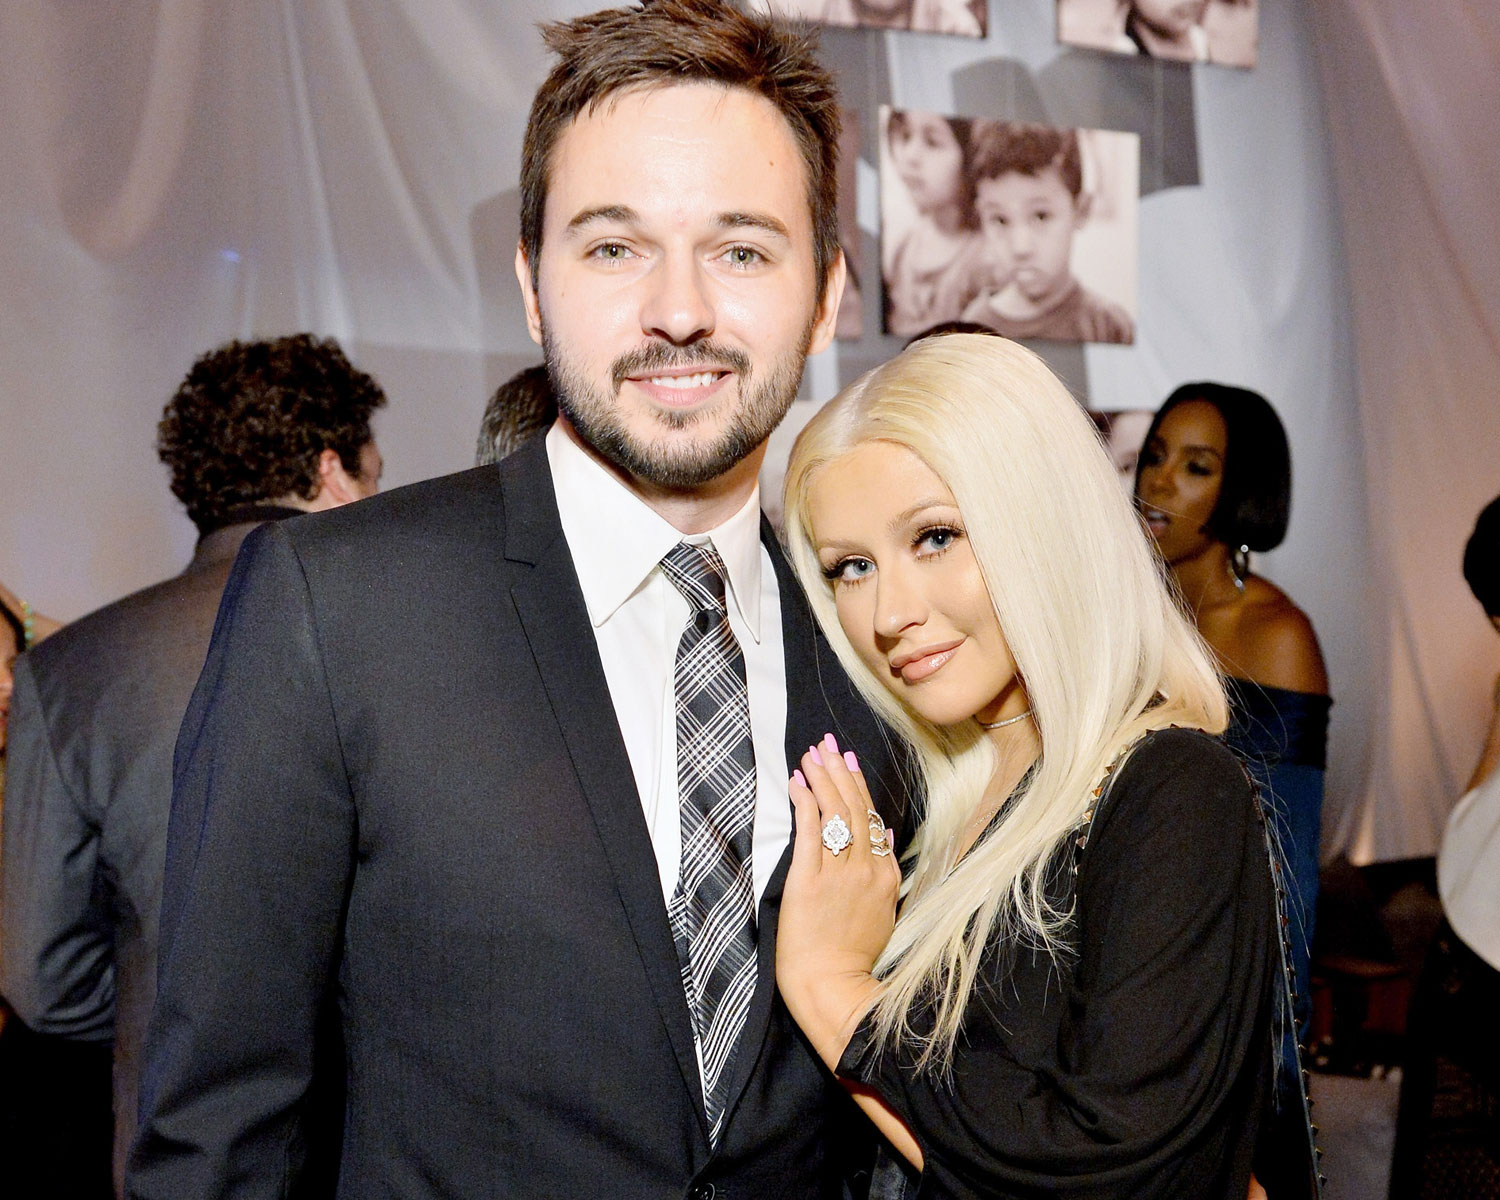 Christina Aguilera Sings To Fiance Matthew Rutler On His